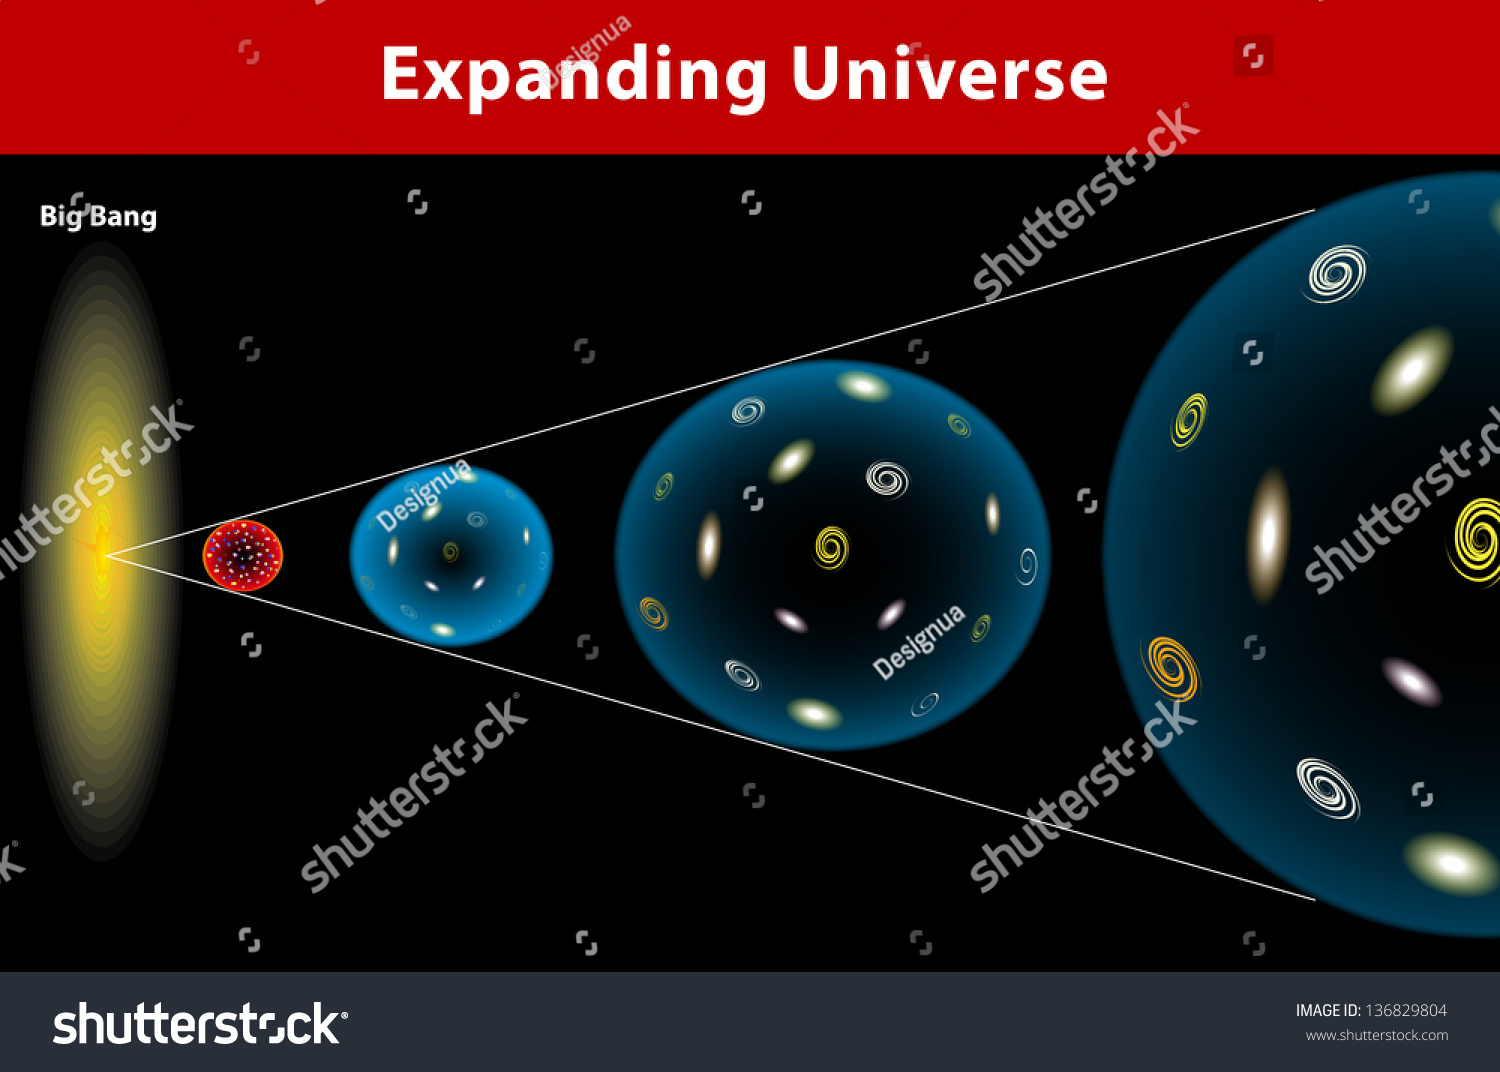 the expanding universe This has been interpreted as those faraway objects moving away from us at a faster speed, one of the cruxes of the expanding universe theory that has been tied to the.